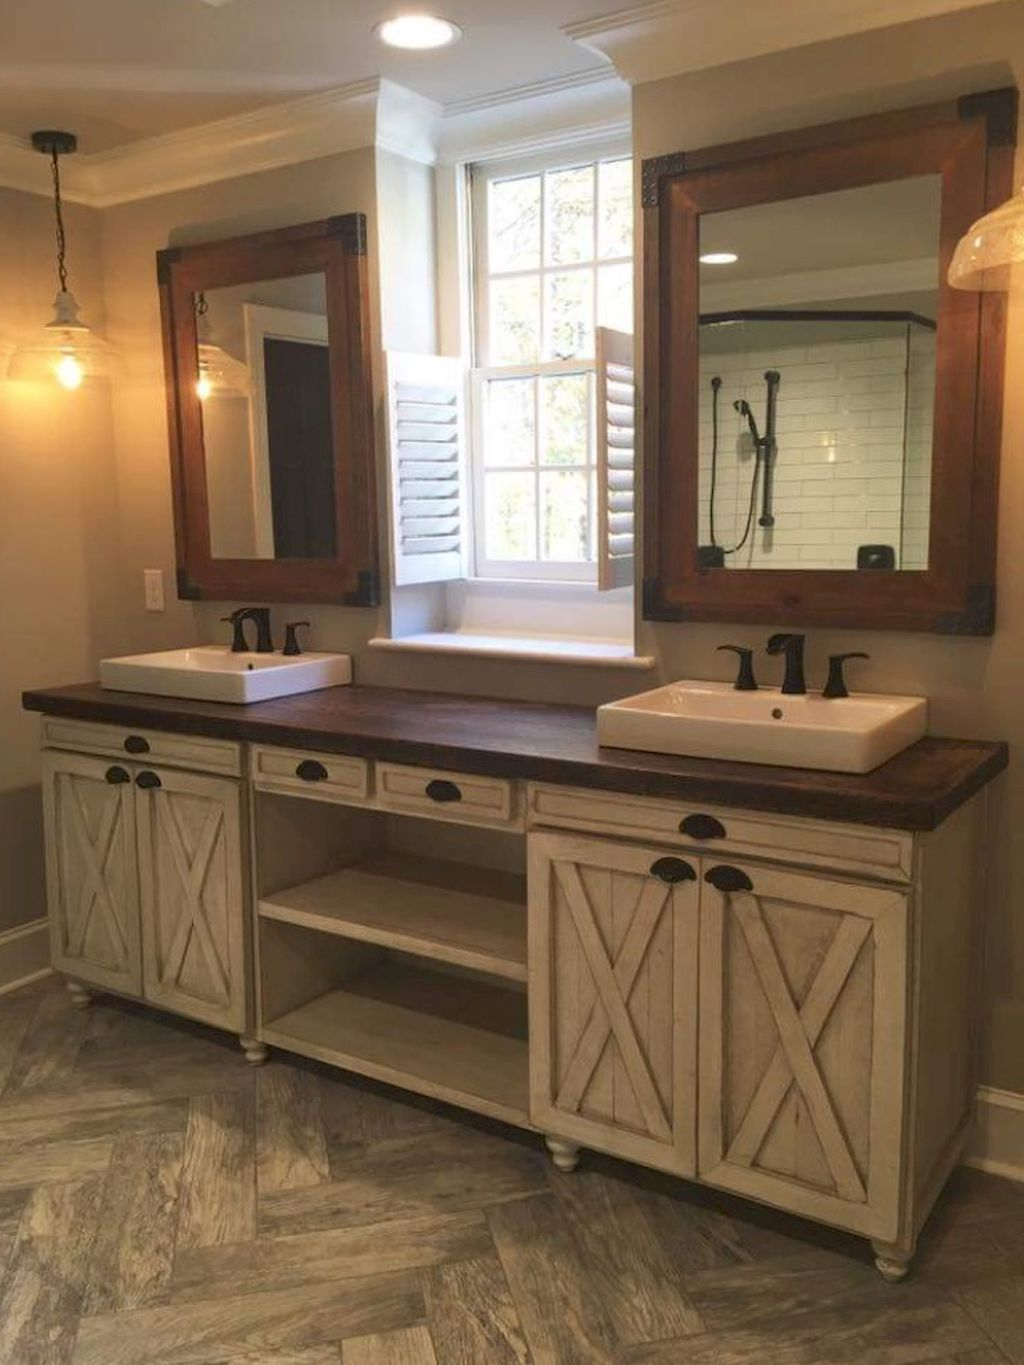 50 Rustic Farmhouse Master Bathroom Remodel Ideas (4 In